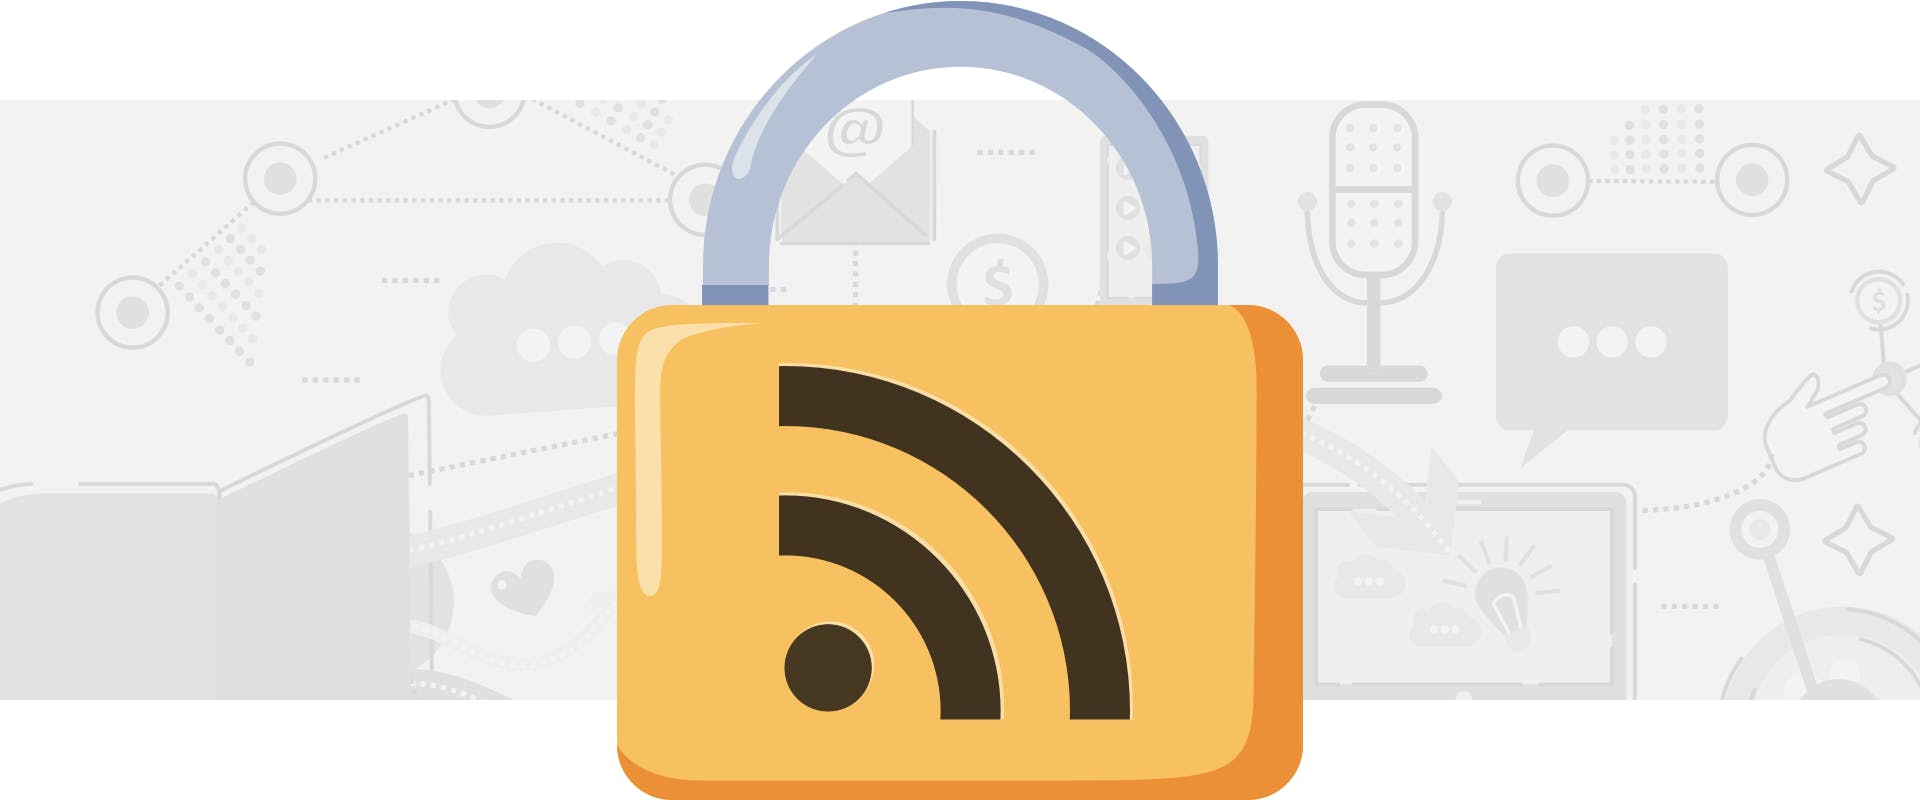 A Locked RSS Feed